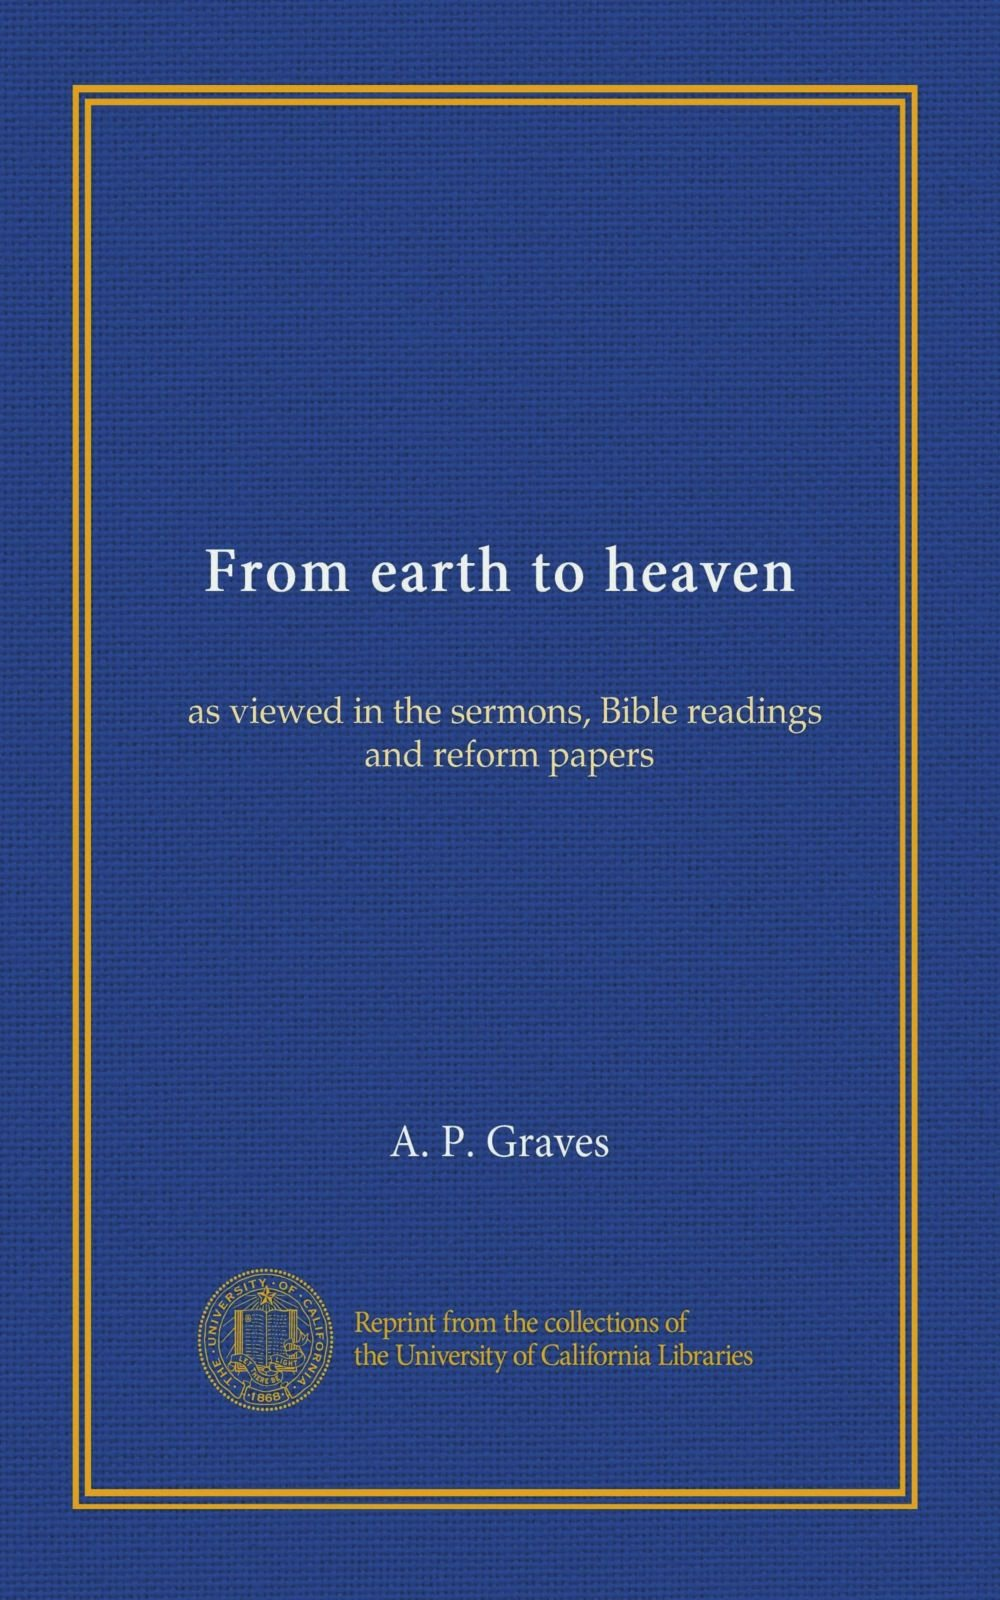 From earth to heaven: as viewed in the sermons, Bible readings, and reform papers Text fb2 ebook